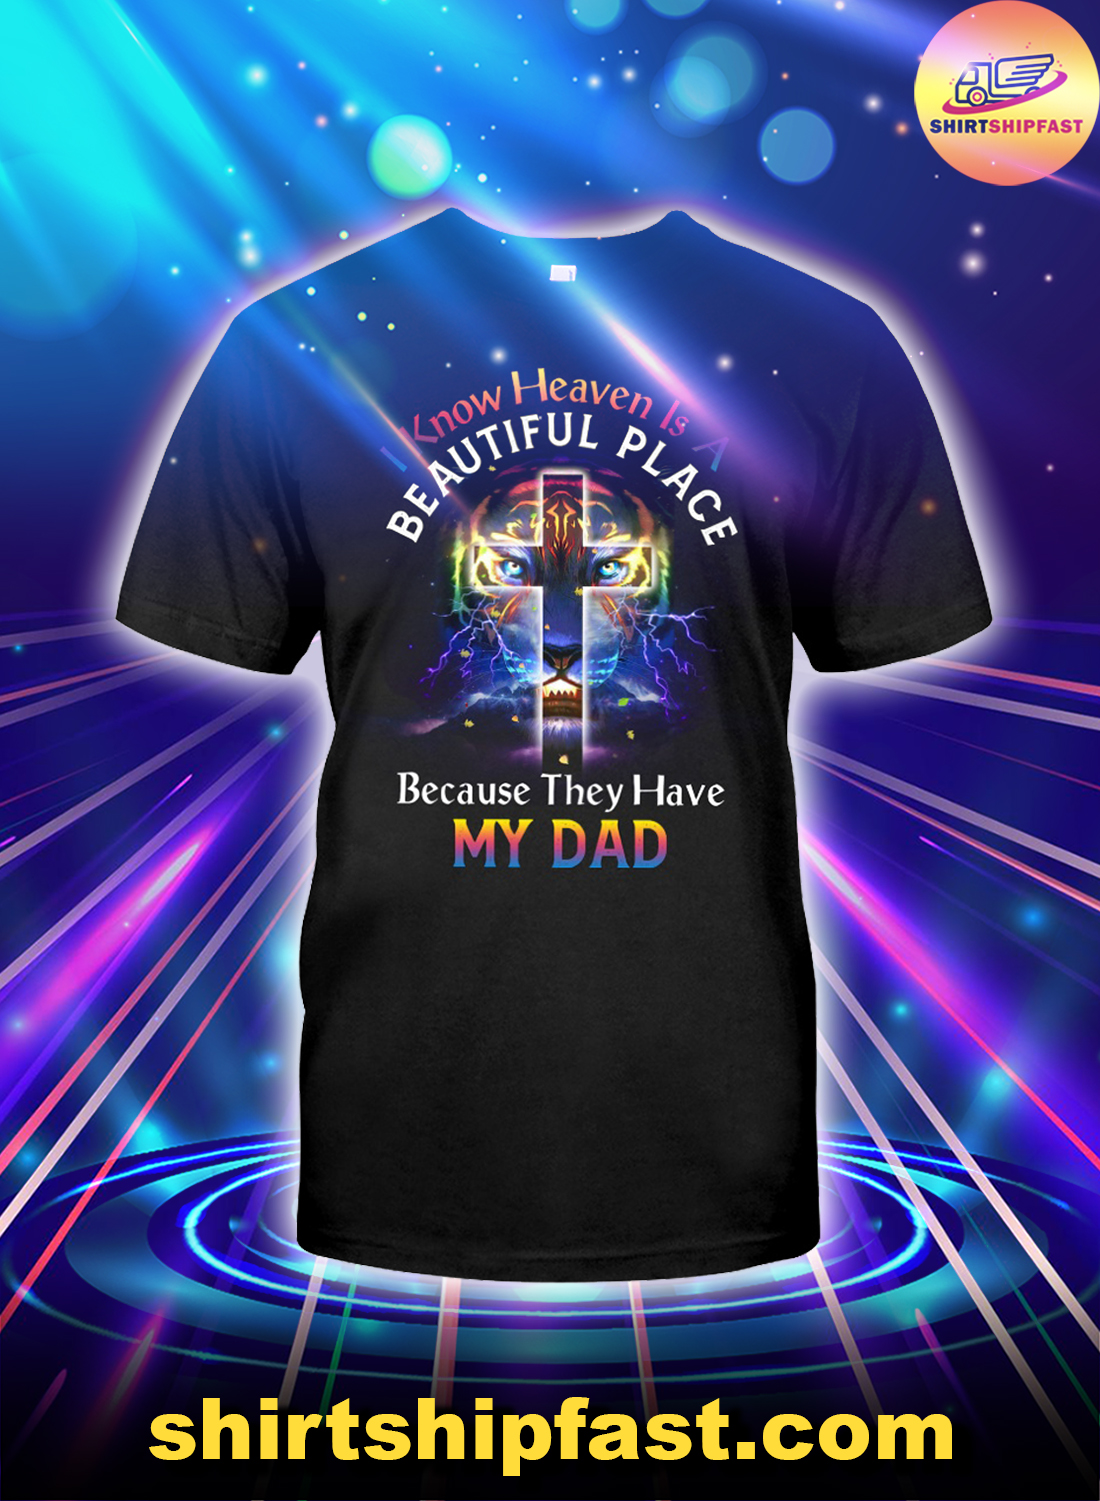 Cross-I-know-heaven-is-a-beautiful-place-because-they-have-my-dad-shirt -1